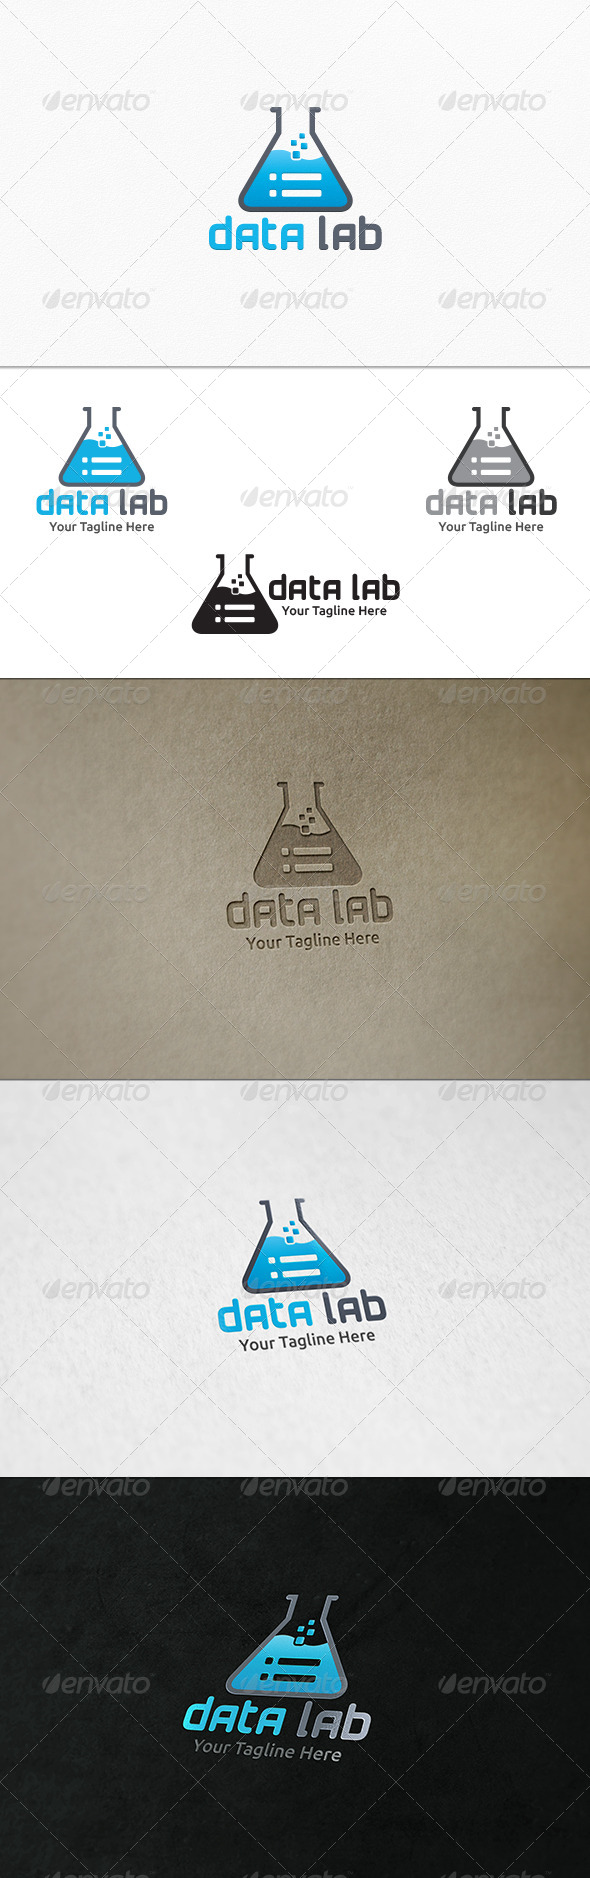 GraphicRiver Data Lab Logo Template 7551566